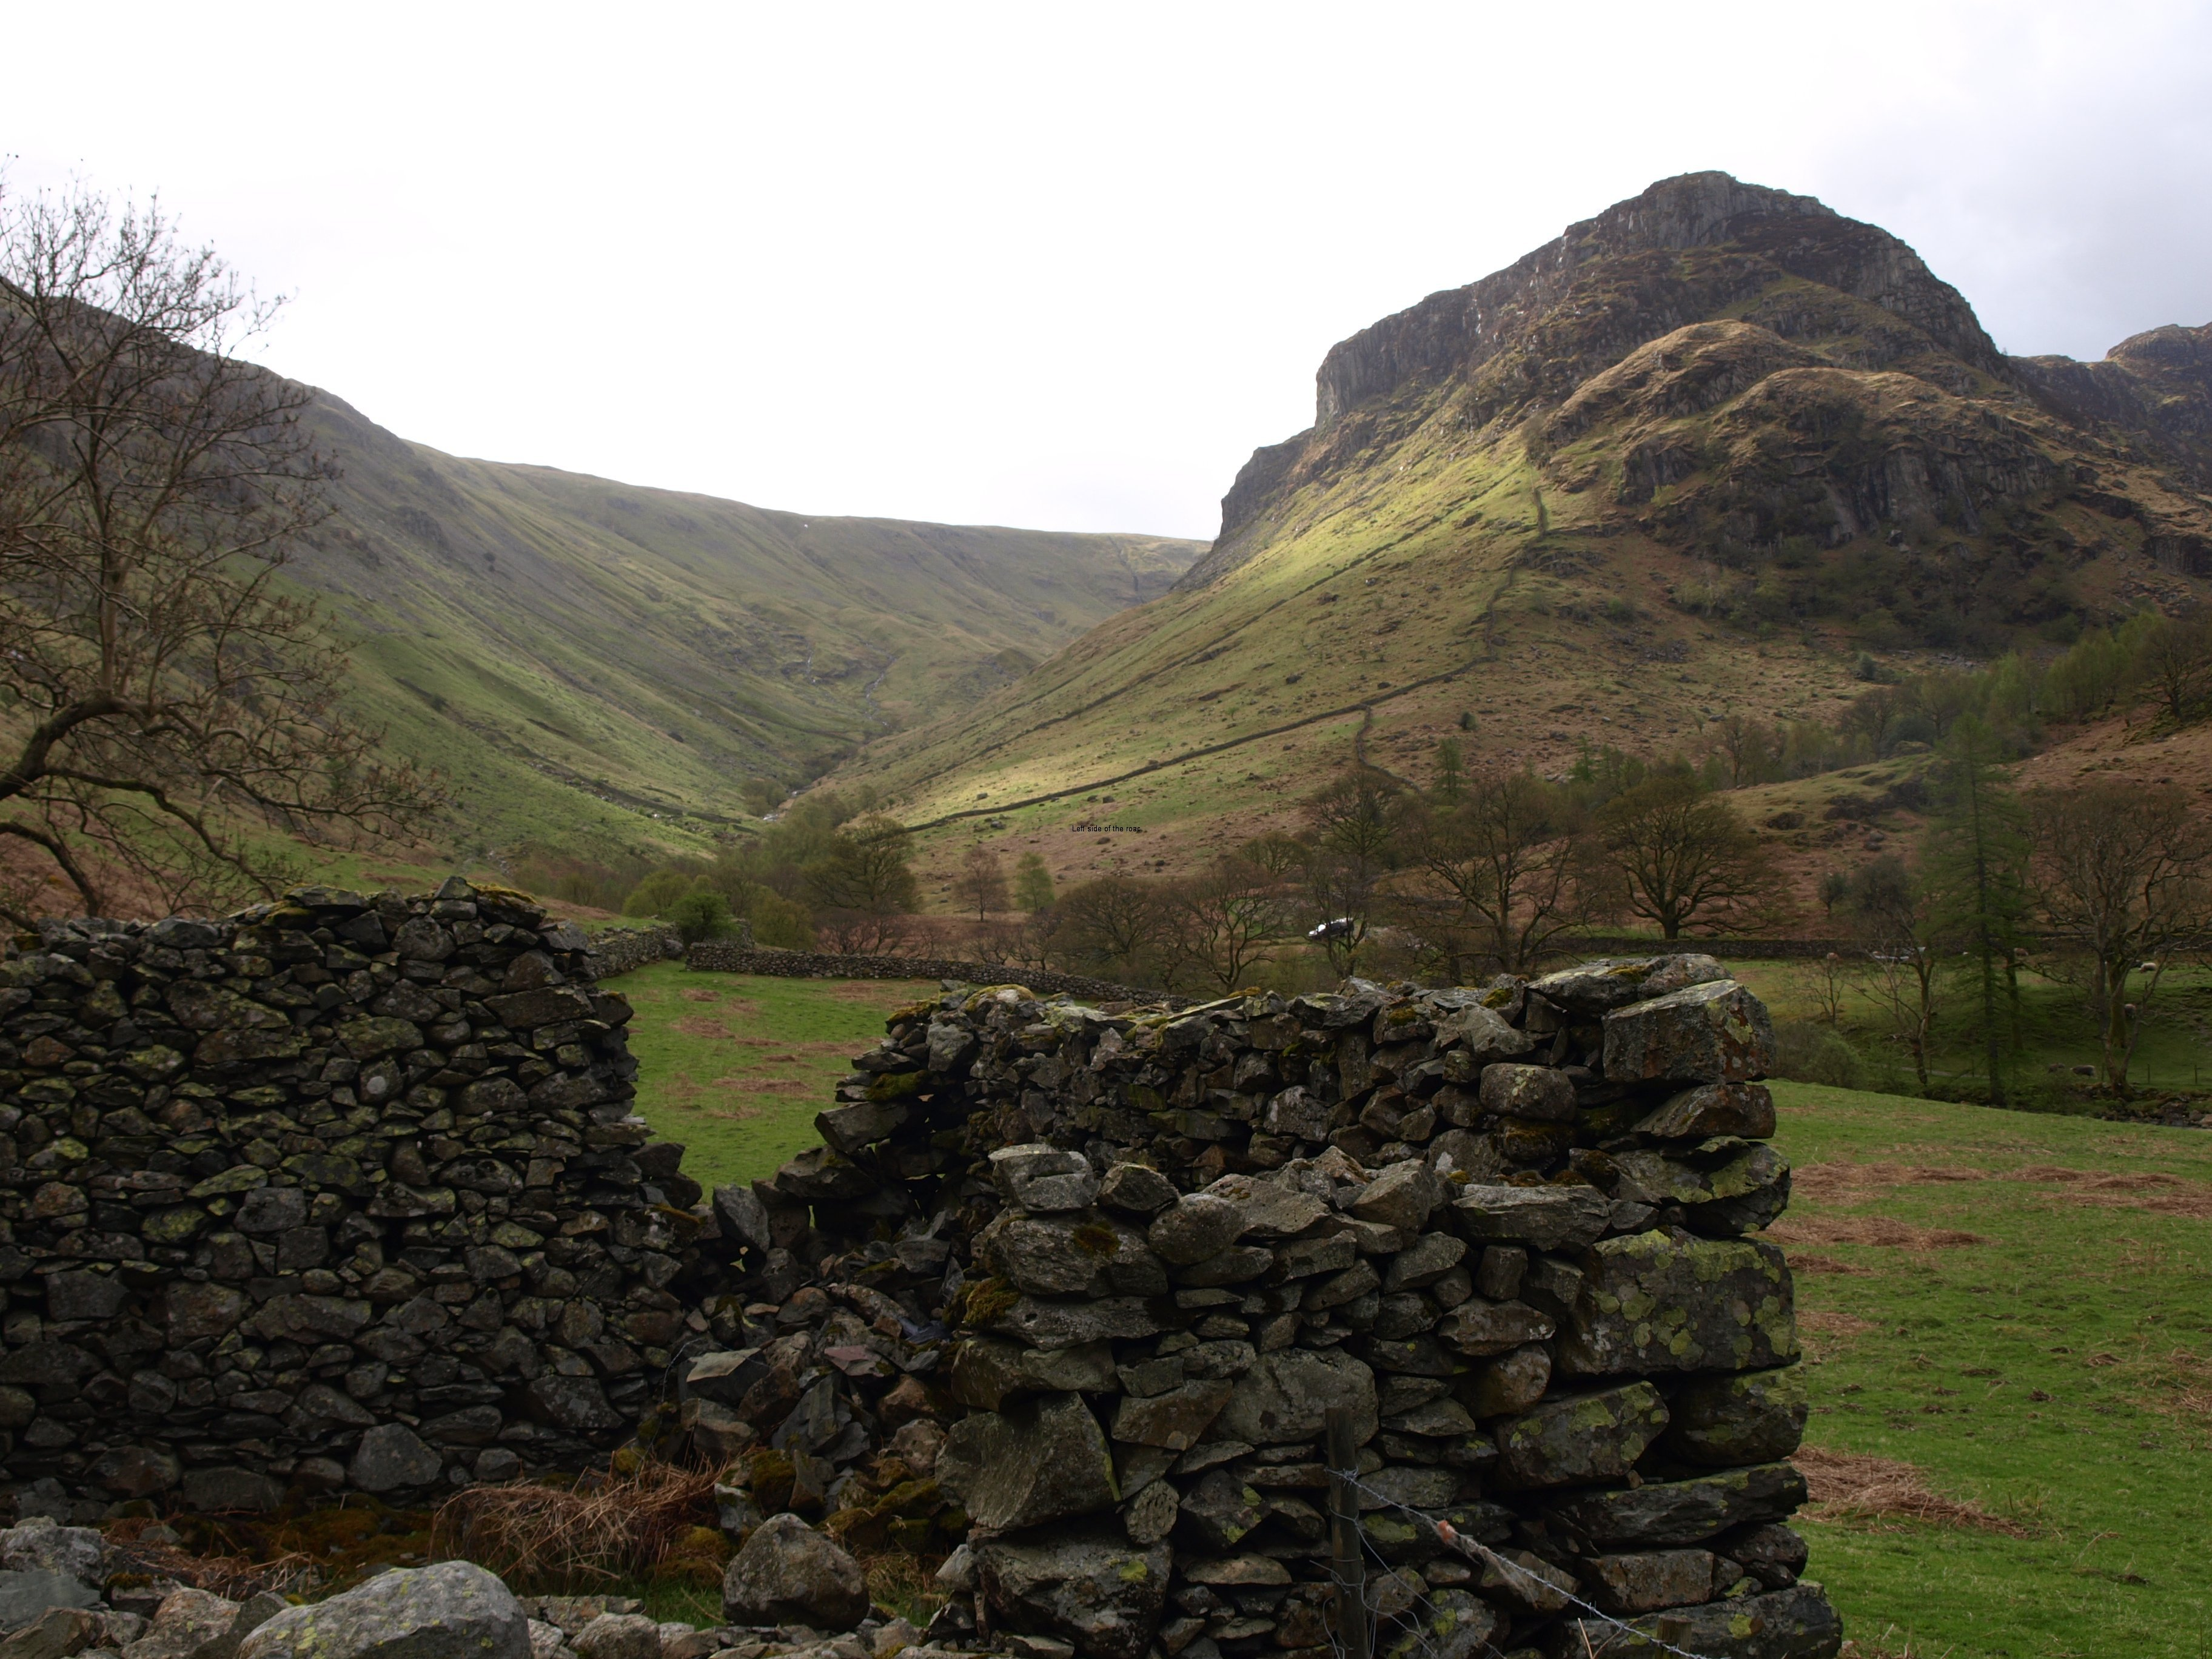 Honister Hause to Grasmere